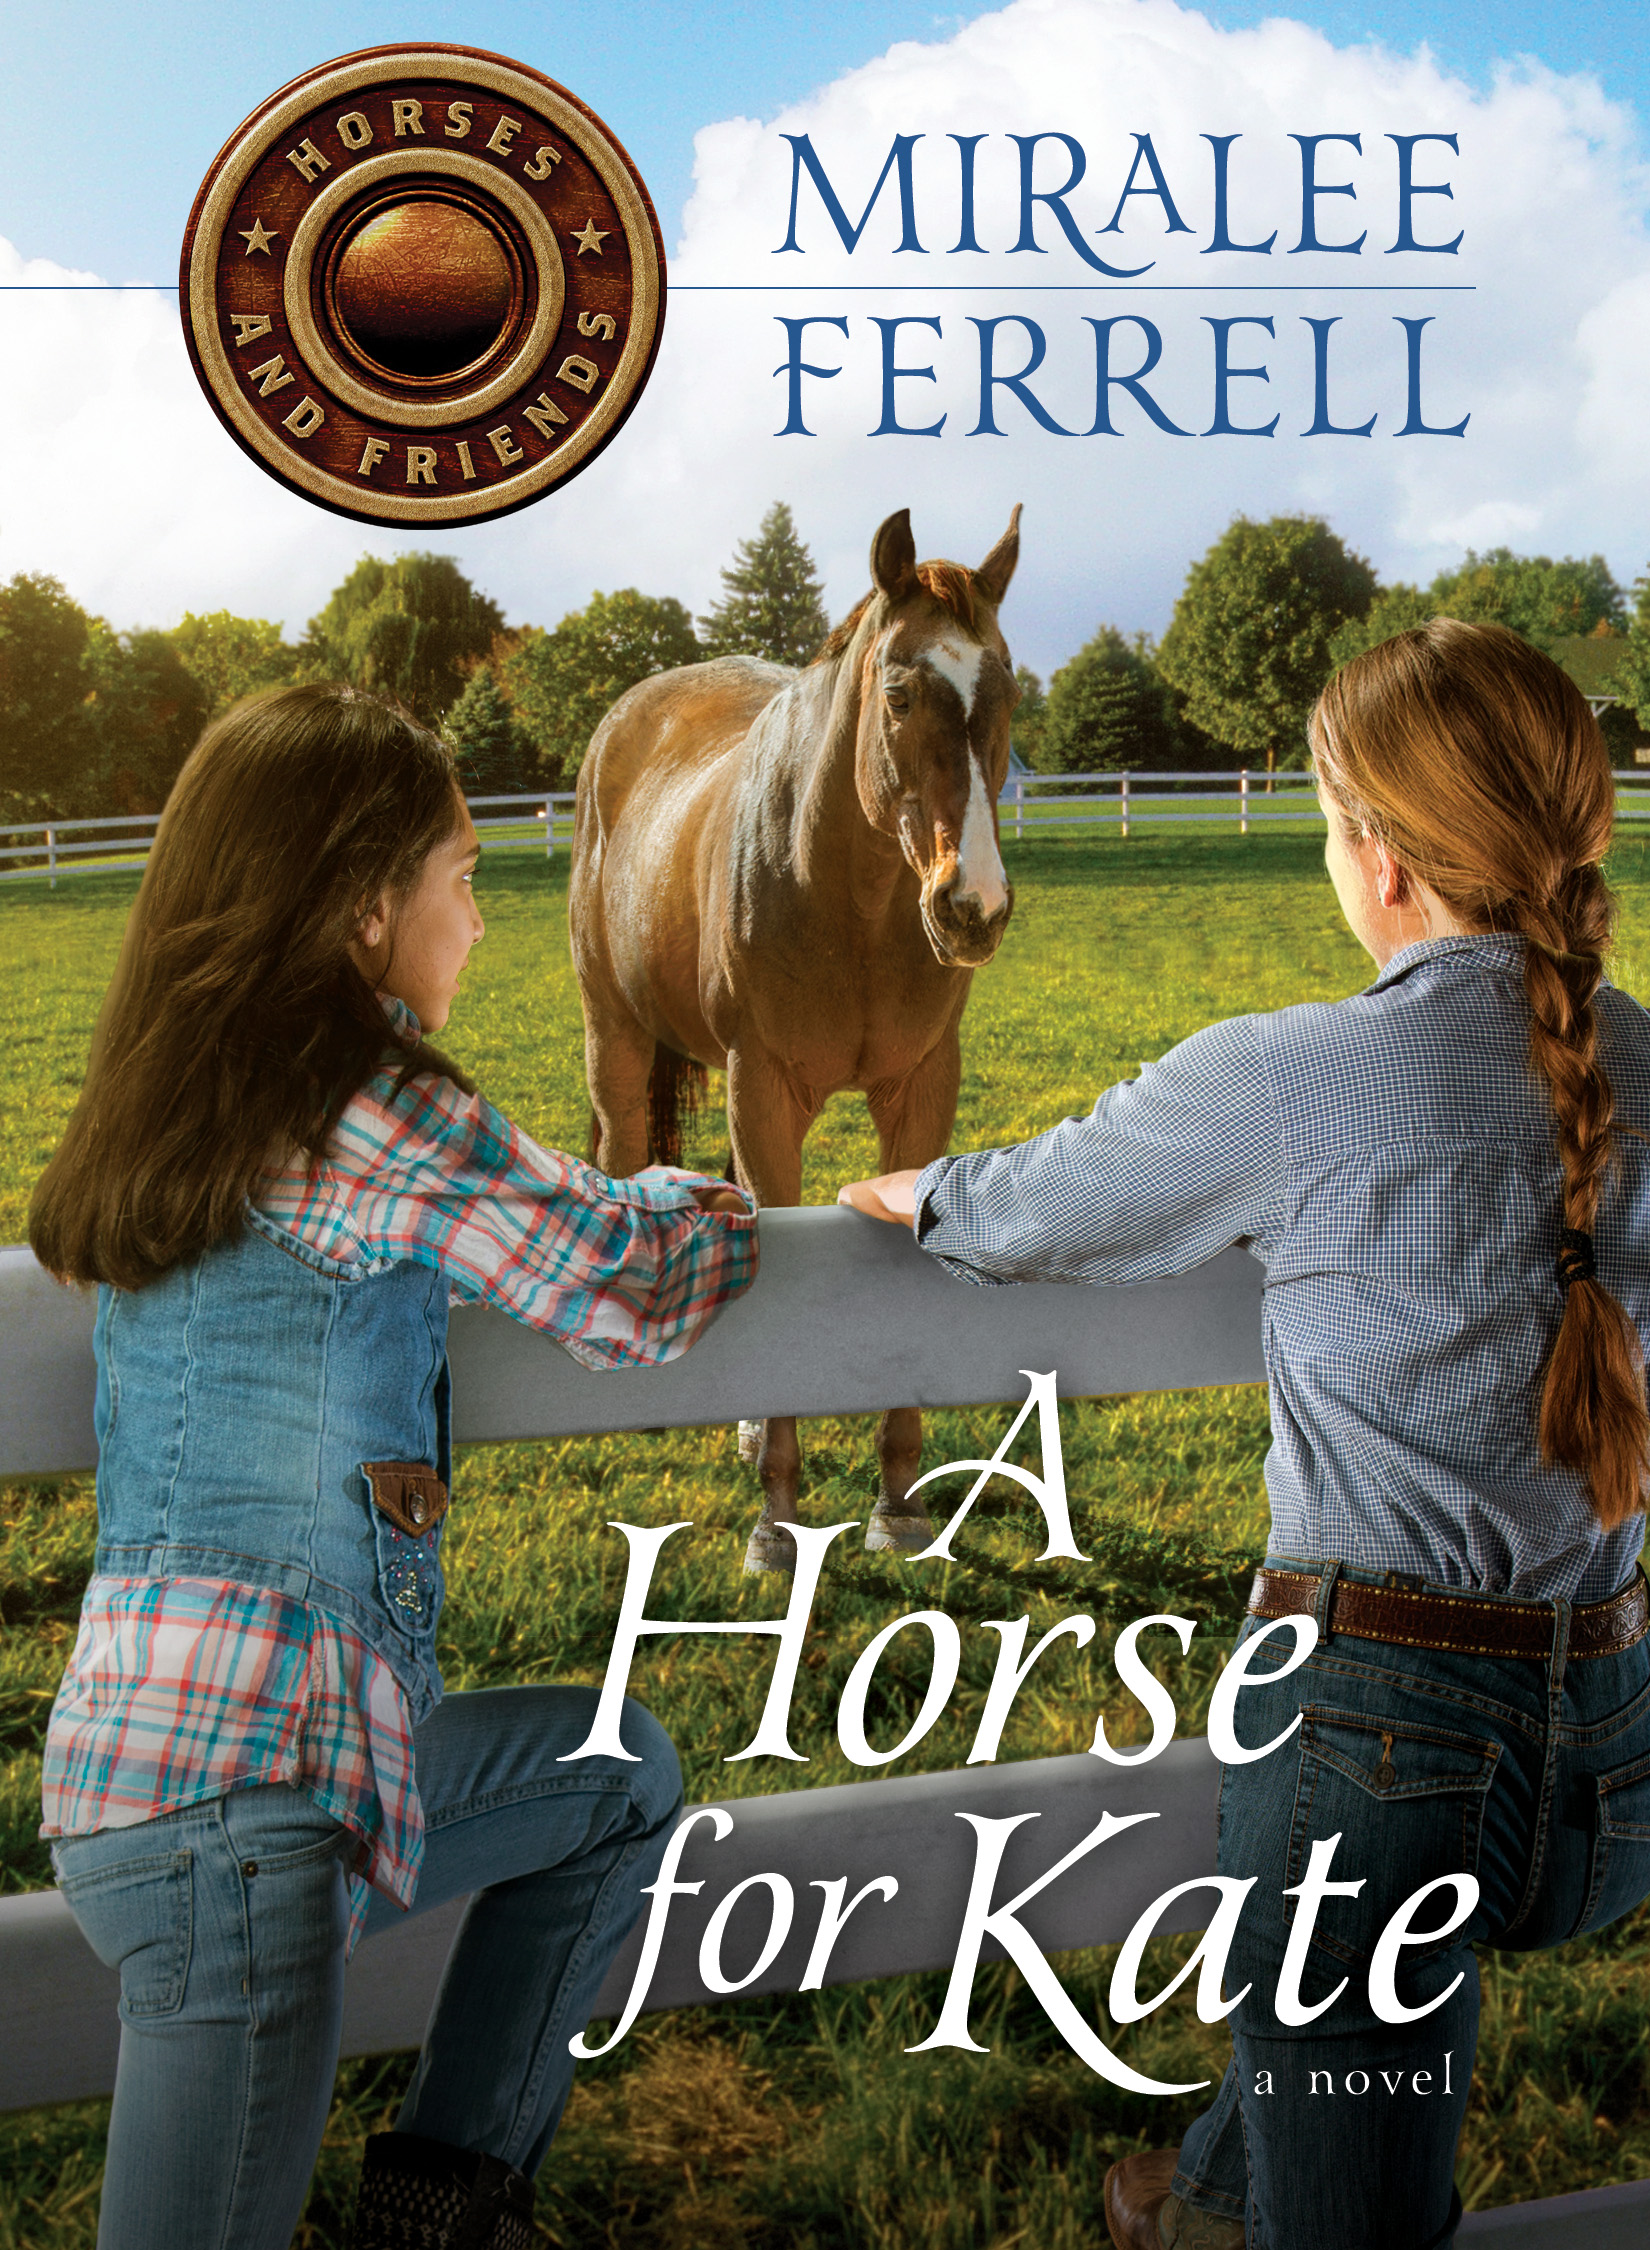 A Horse Of Her Own Would Be Awesome But Kate Figures That Might Be A Long  Way Away, Especially Since She Had To Give Up Riding Lessons And Move To  Her Late